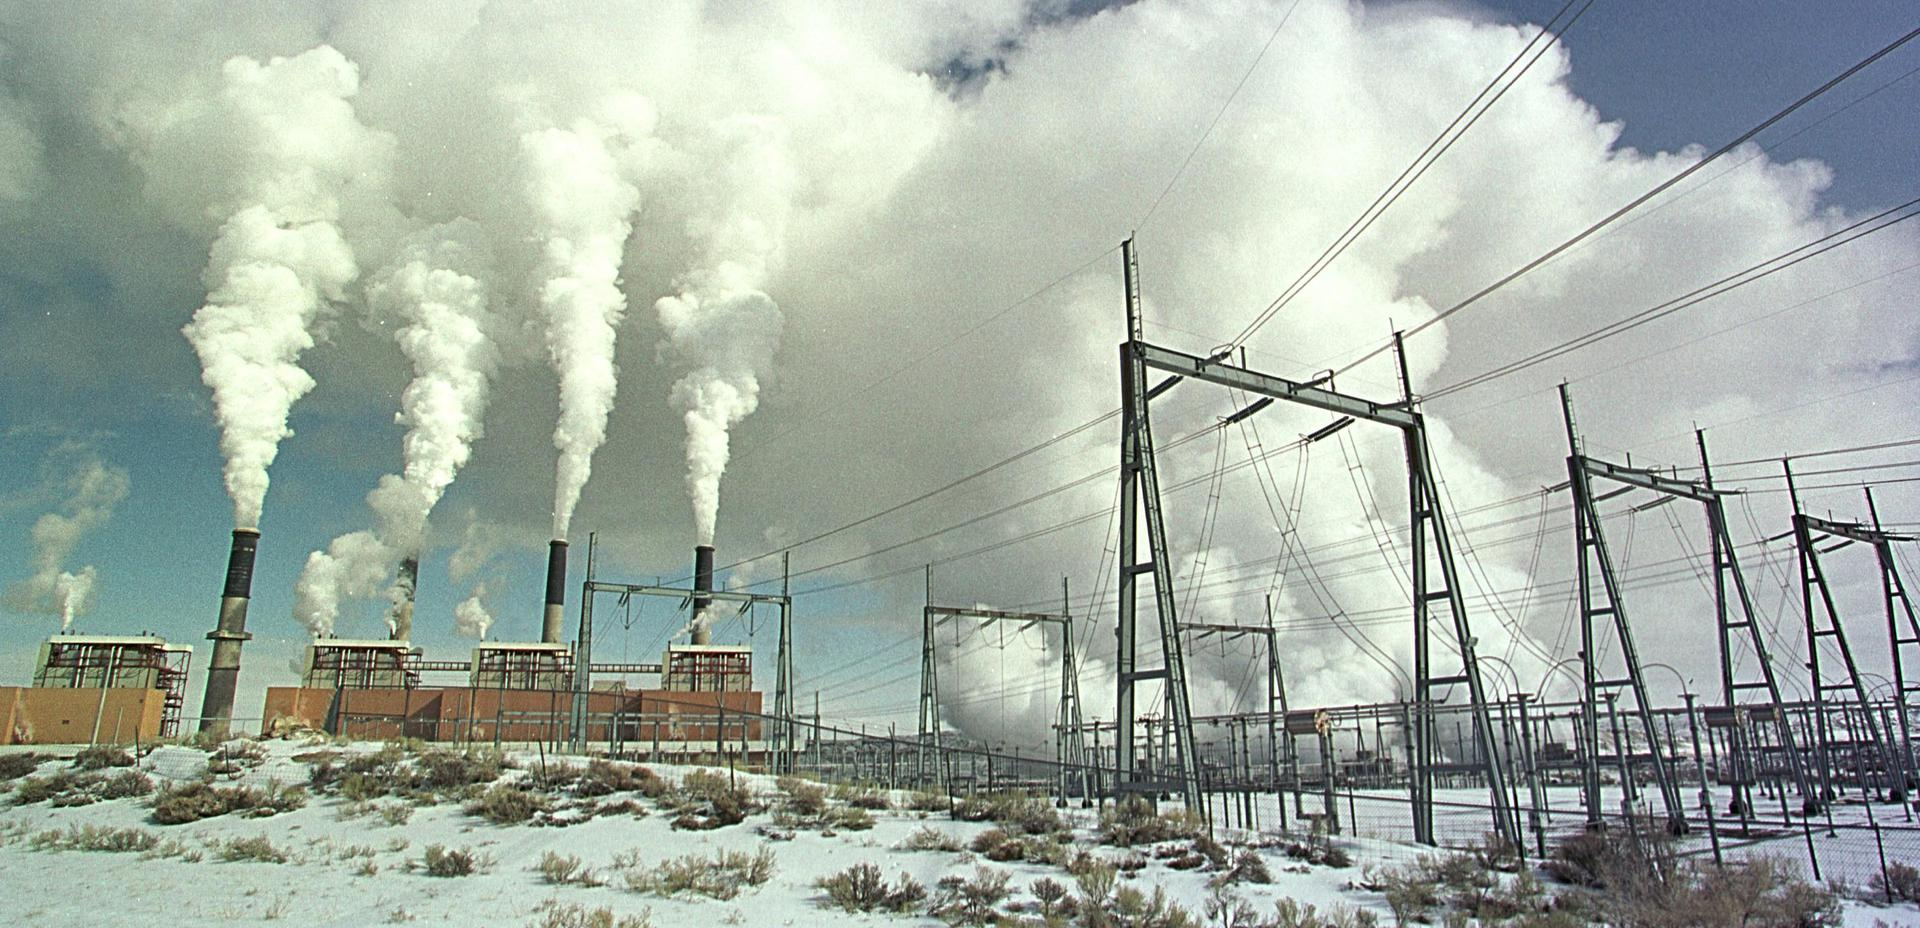 Stacks emit steam at the Jim Bridger Power Plant February 14, 2001 near Point of Rocks, Wyoming. PacifiCorp wants to shut down two of its units earlier than planned.  Photo by Michael Smith/Newsmakers